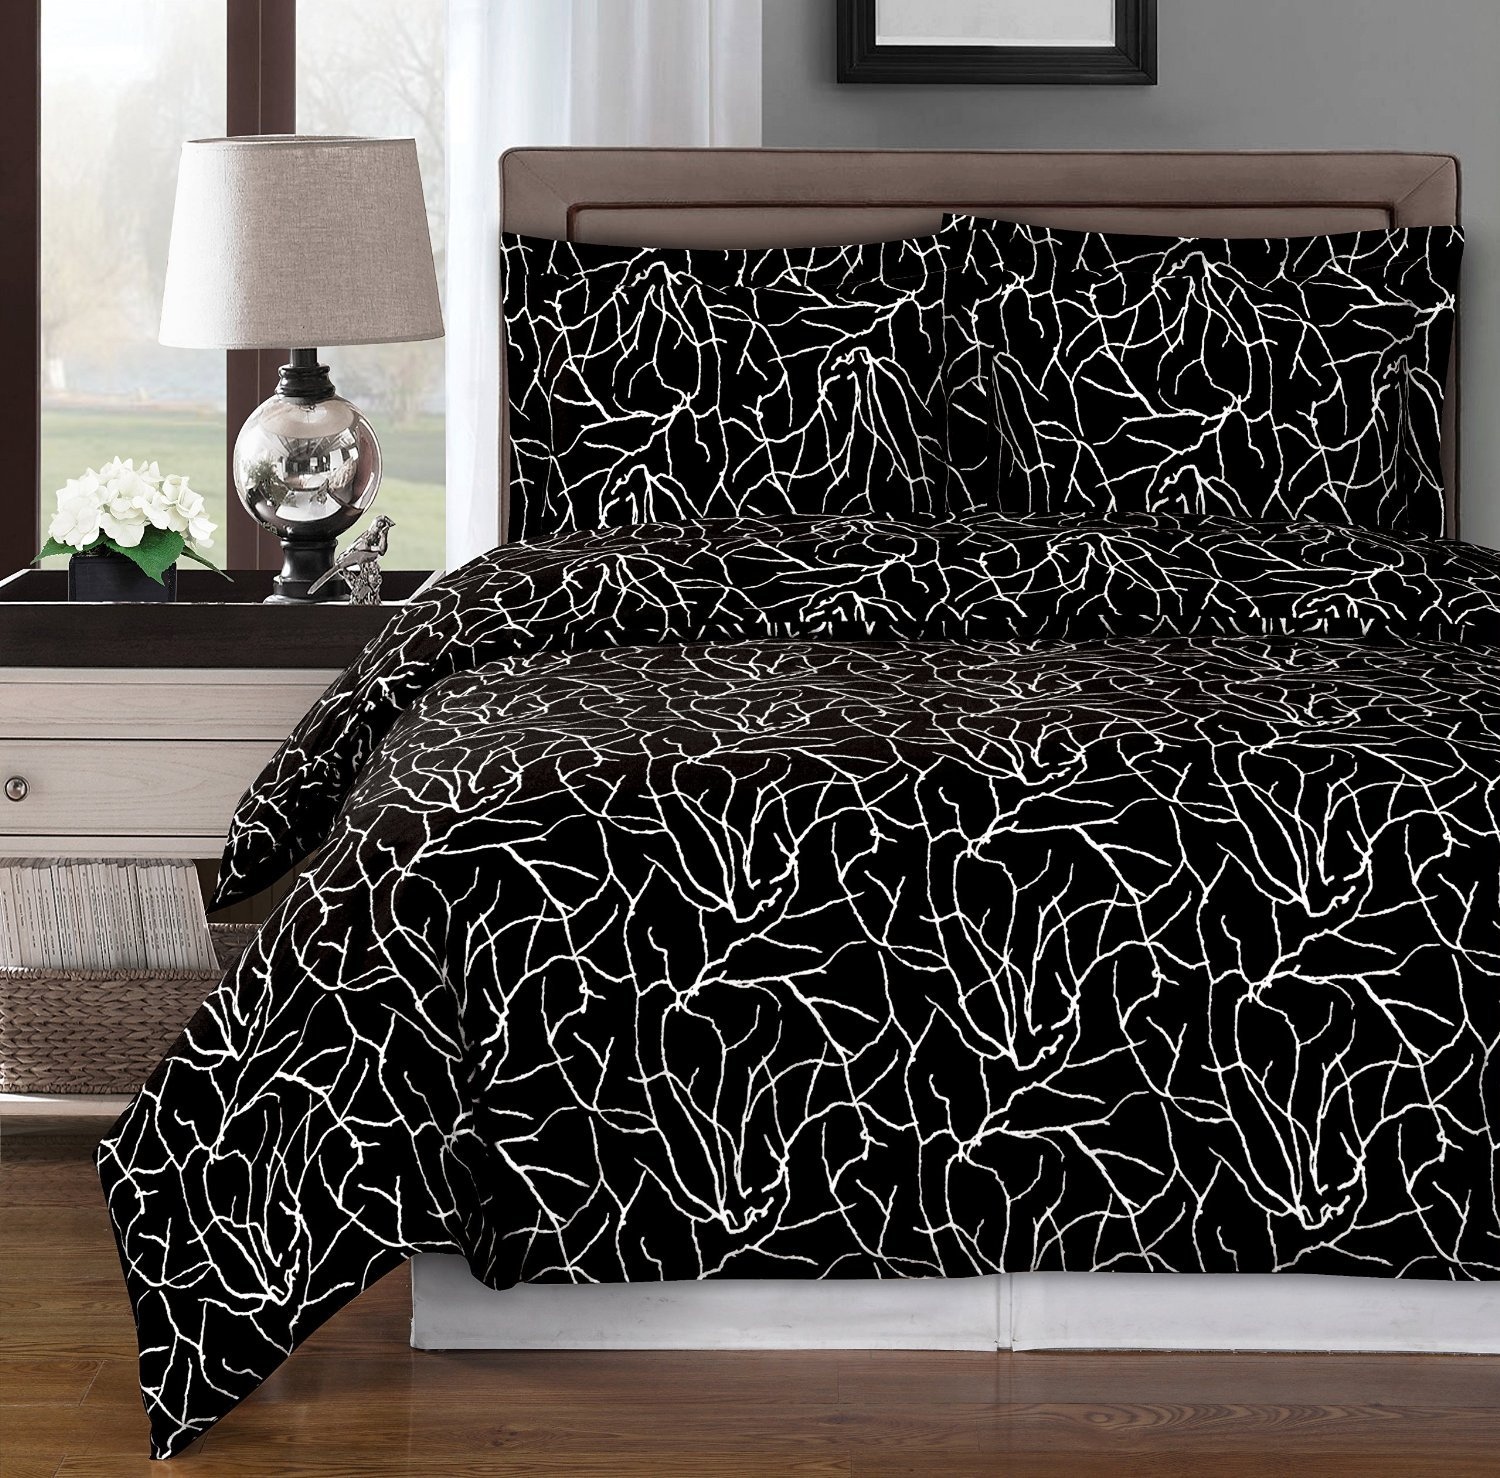 Black and White Ema 3pc Full / Queen Duvet Cover Set